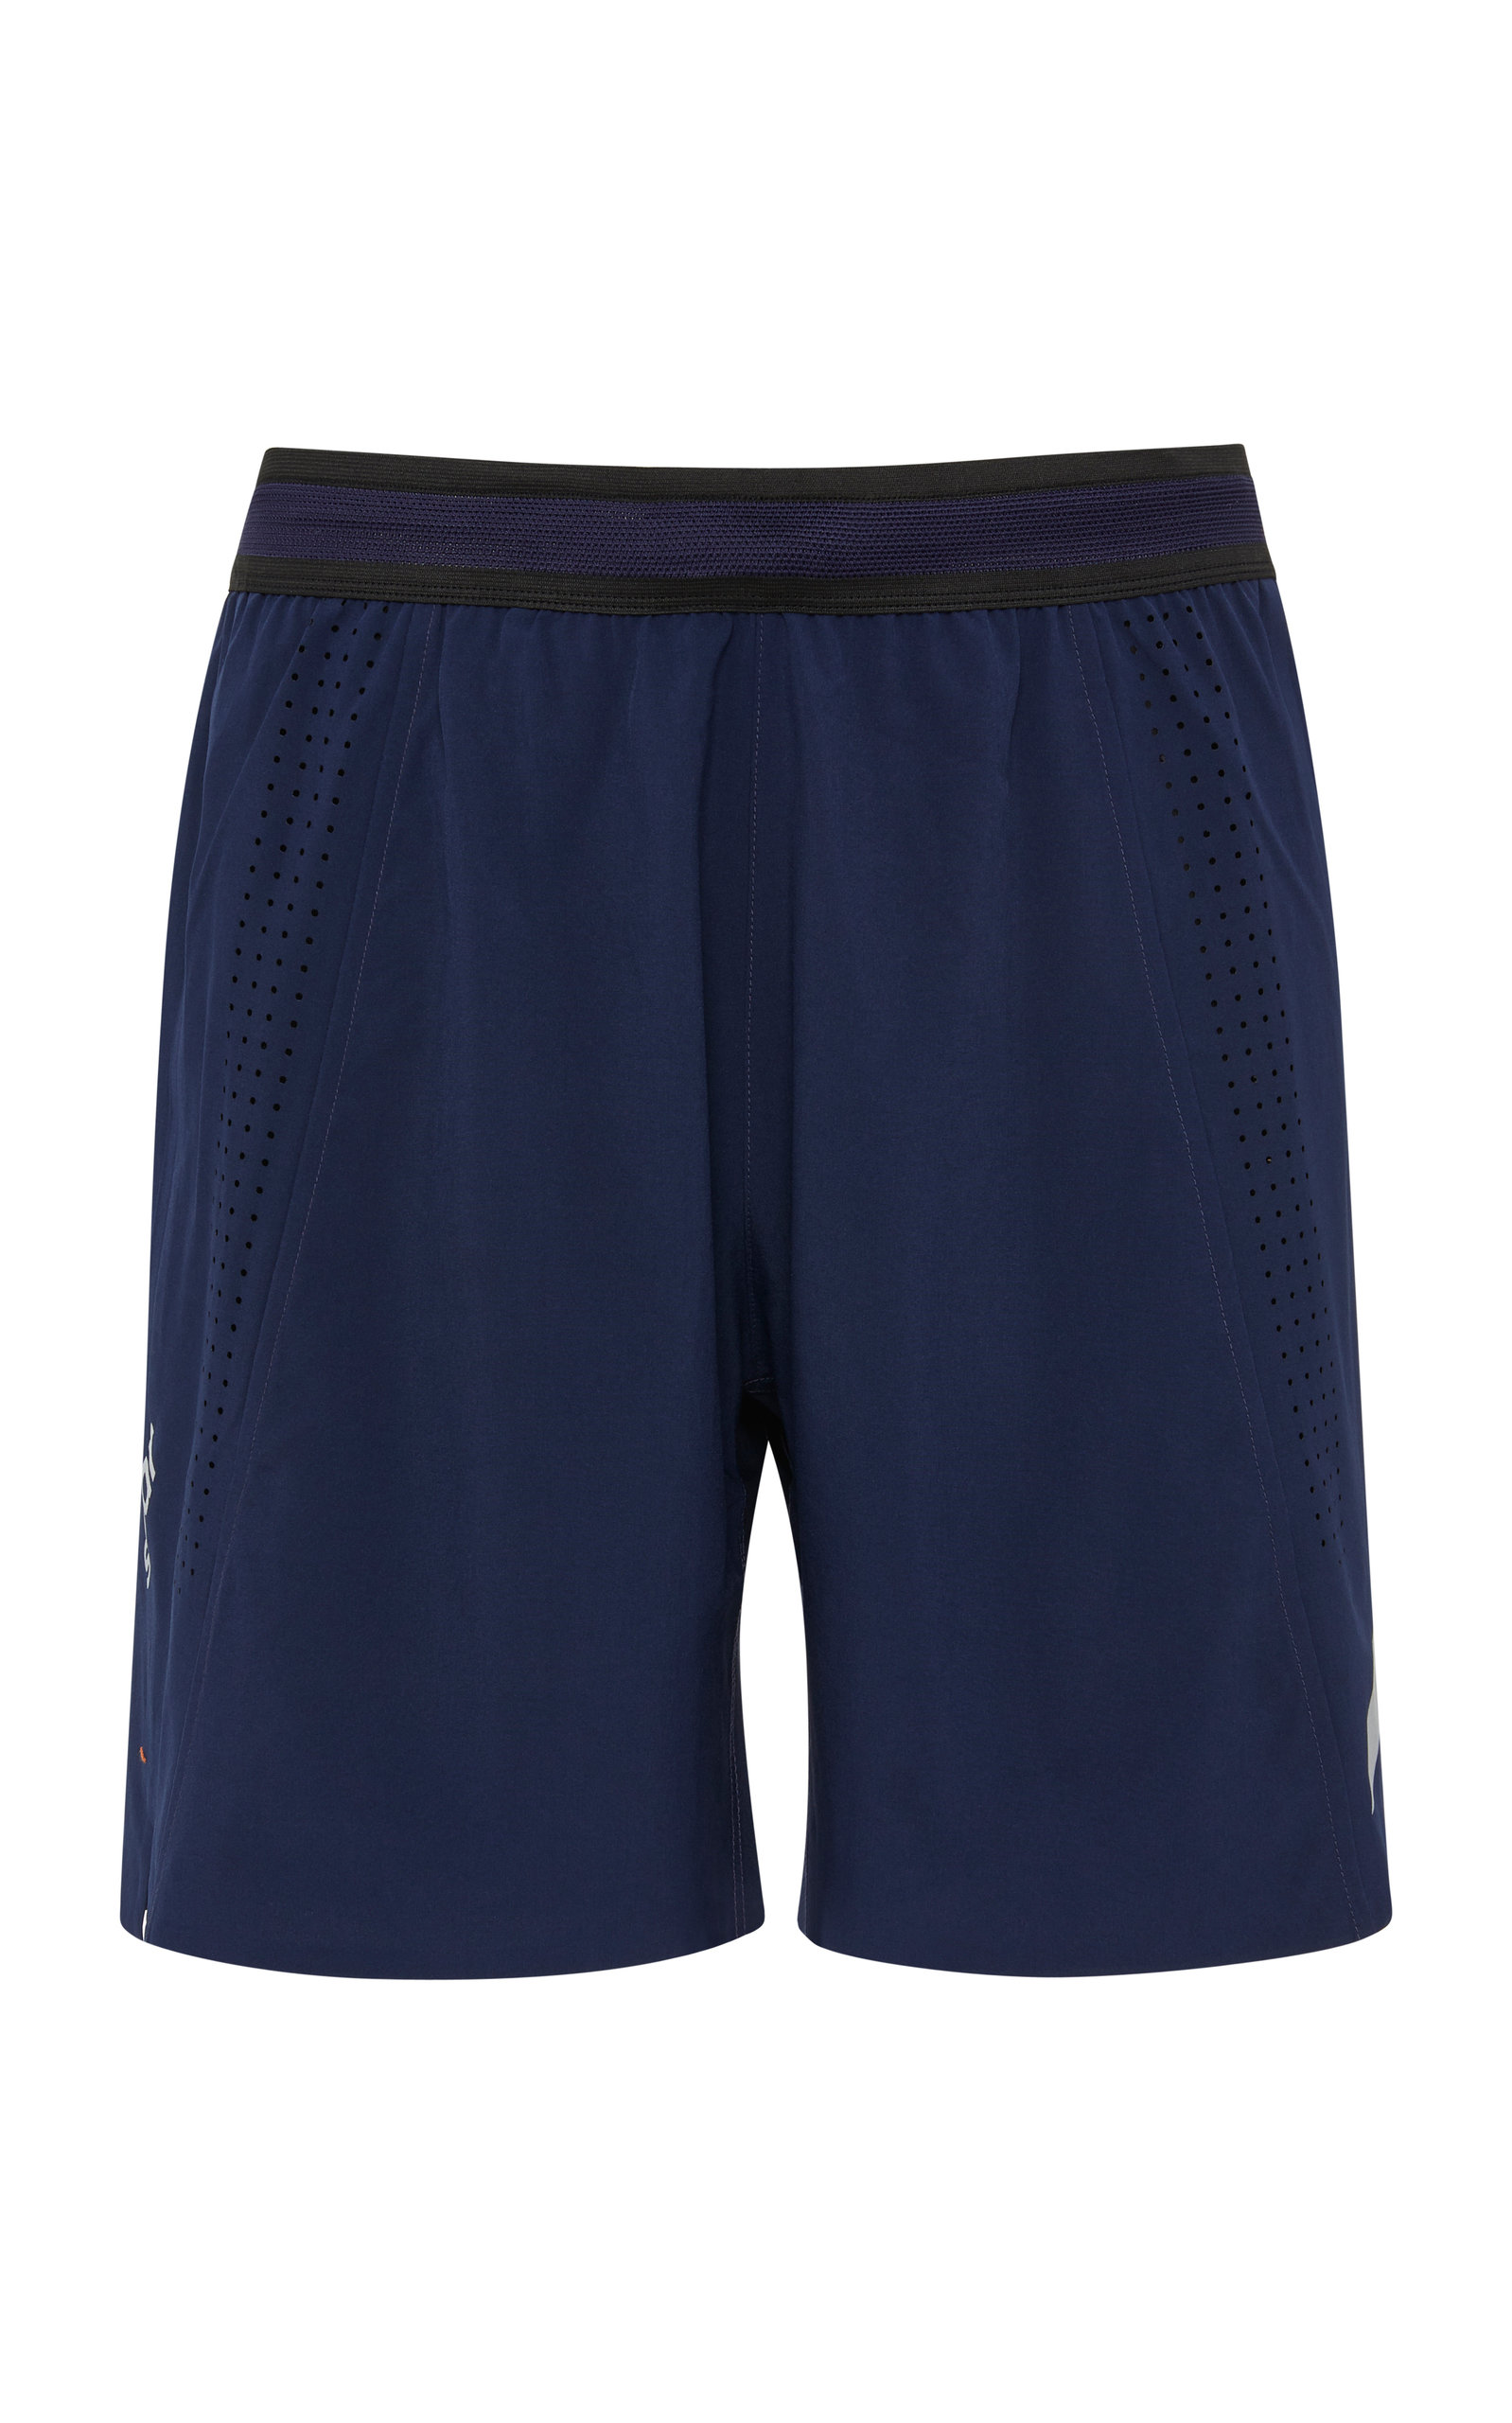 SOAR Mesh-Paneled Stretch-Shell Shorts in Navy